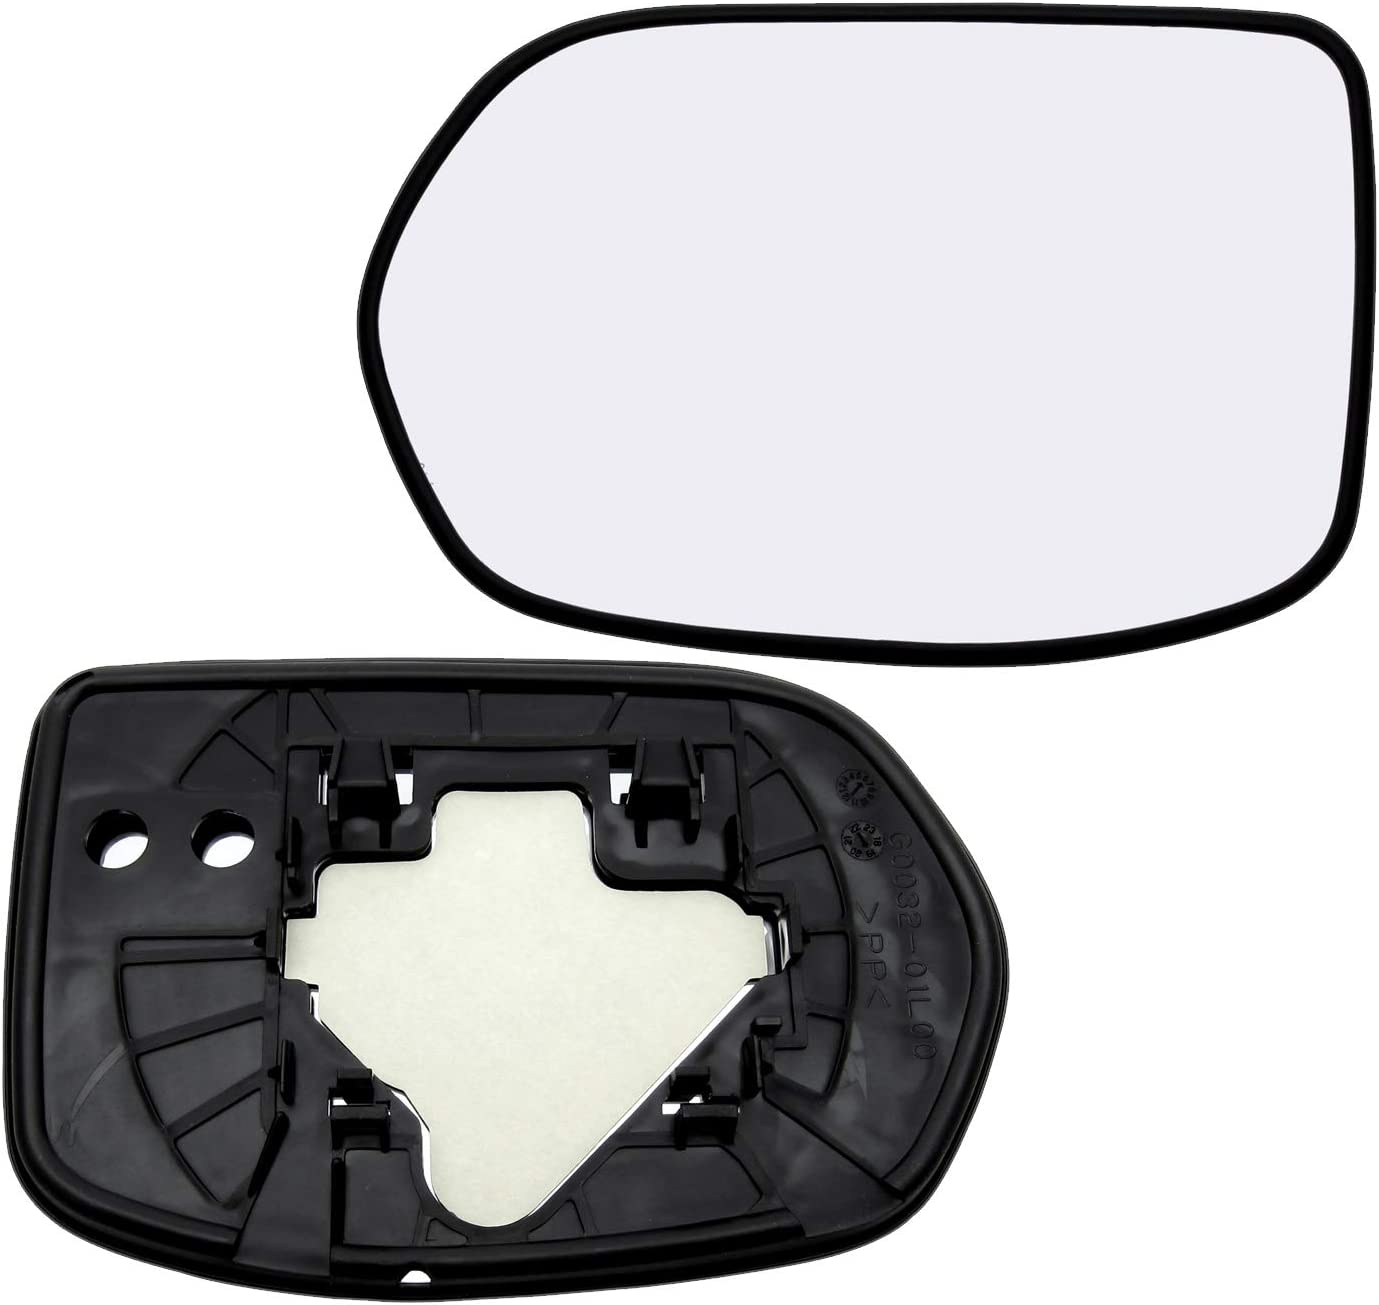 New Replacement Driver Side Mirror Glass W Backing Compatible With 2007-2011 Honda CR-V Sold By Rugged TUFF